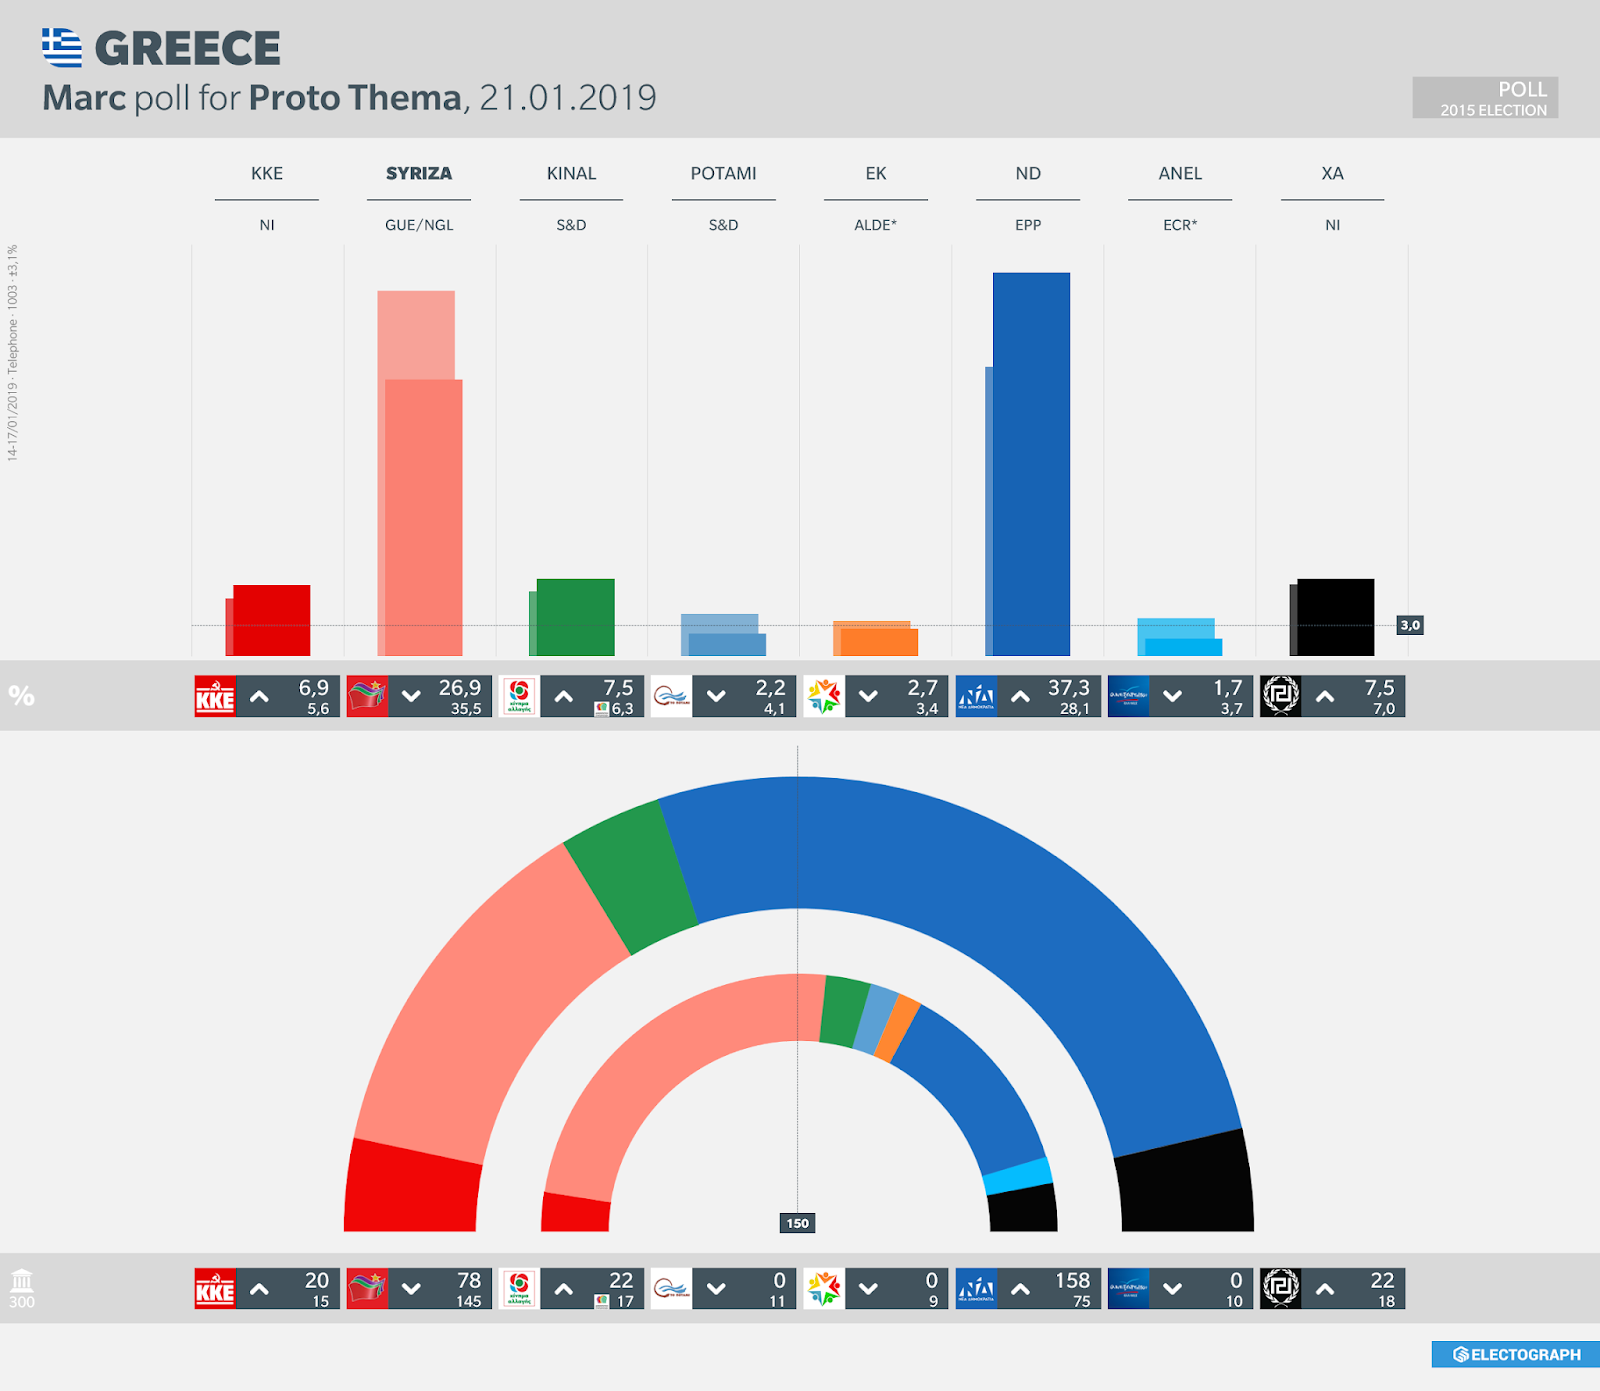 GREECE: Marc poll chart for Proto Thema, 21 January 2019